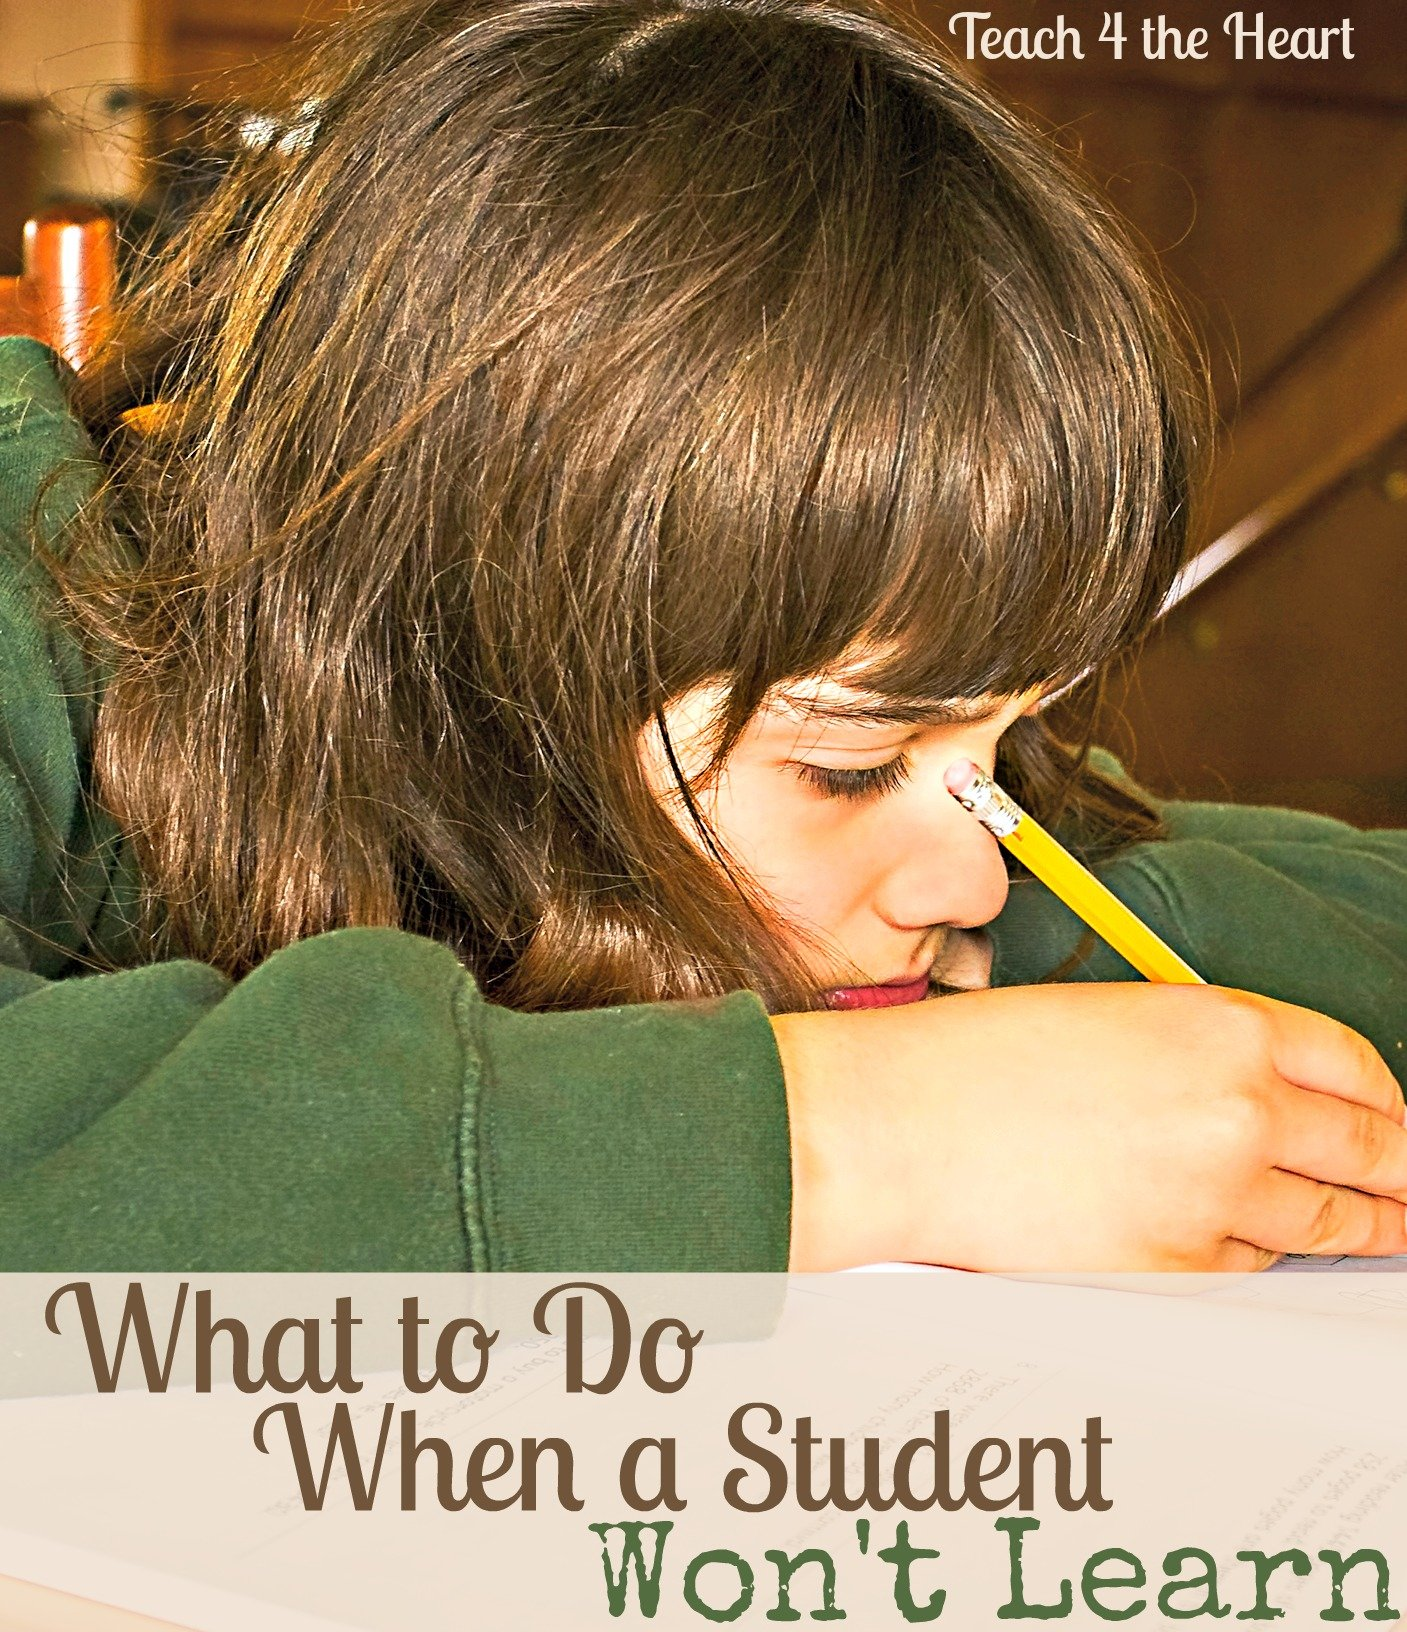 What to Do When a Student Won't Learn